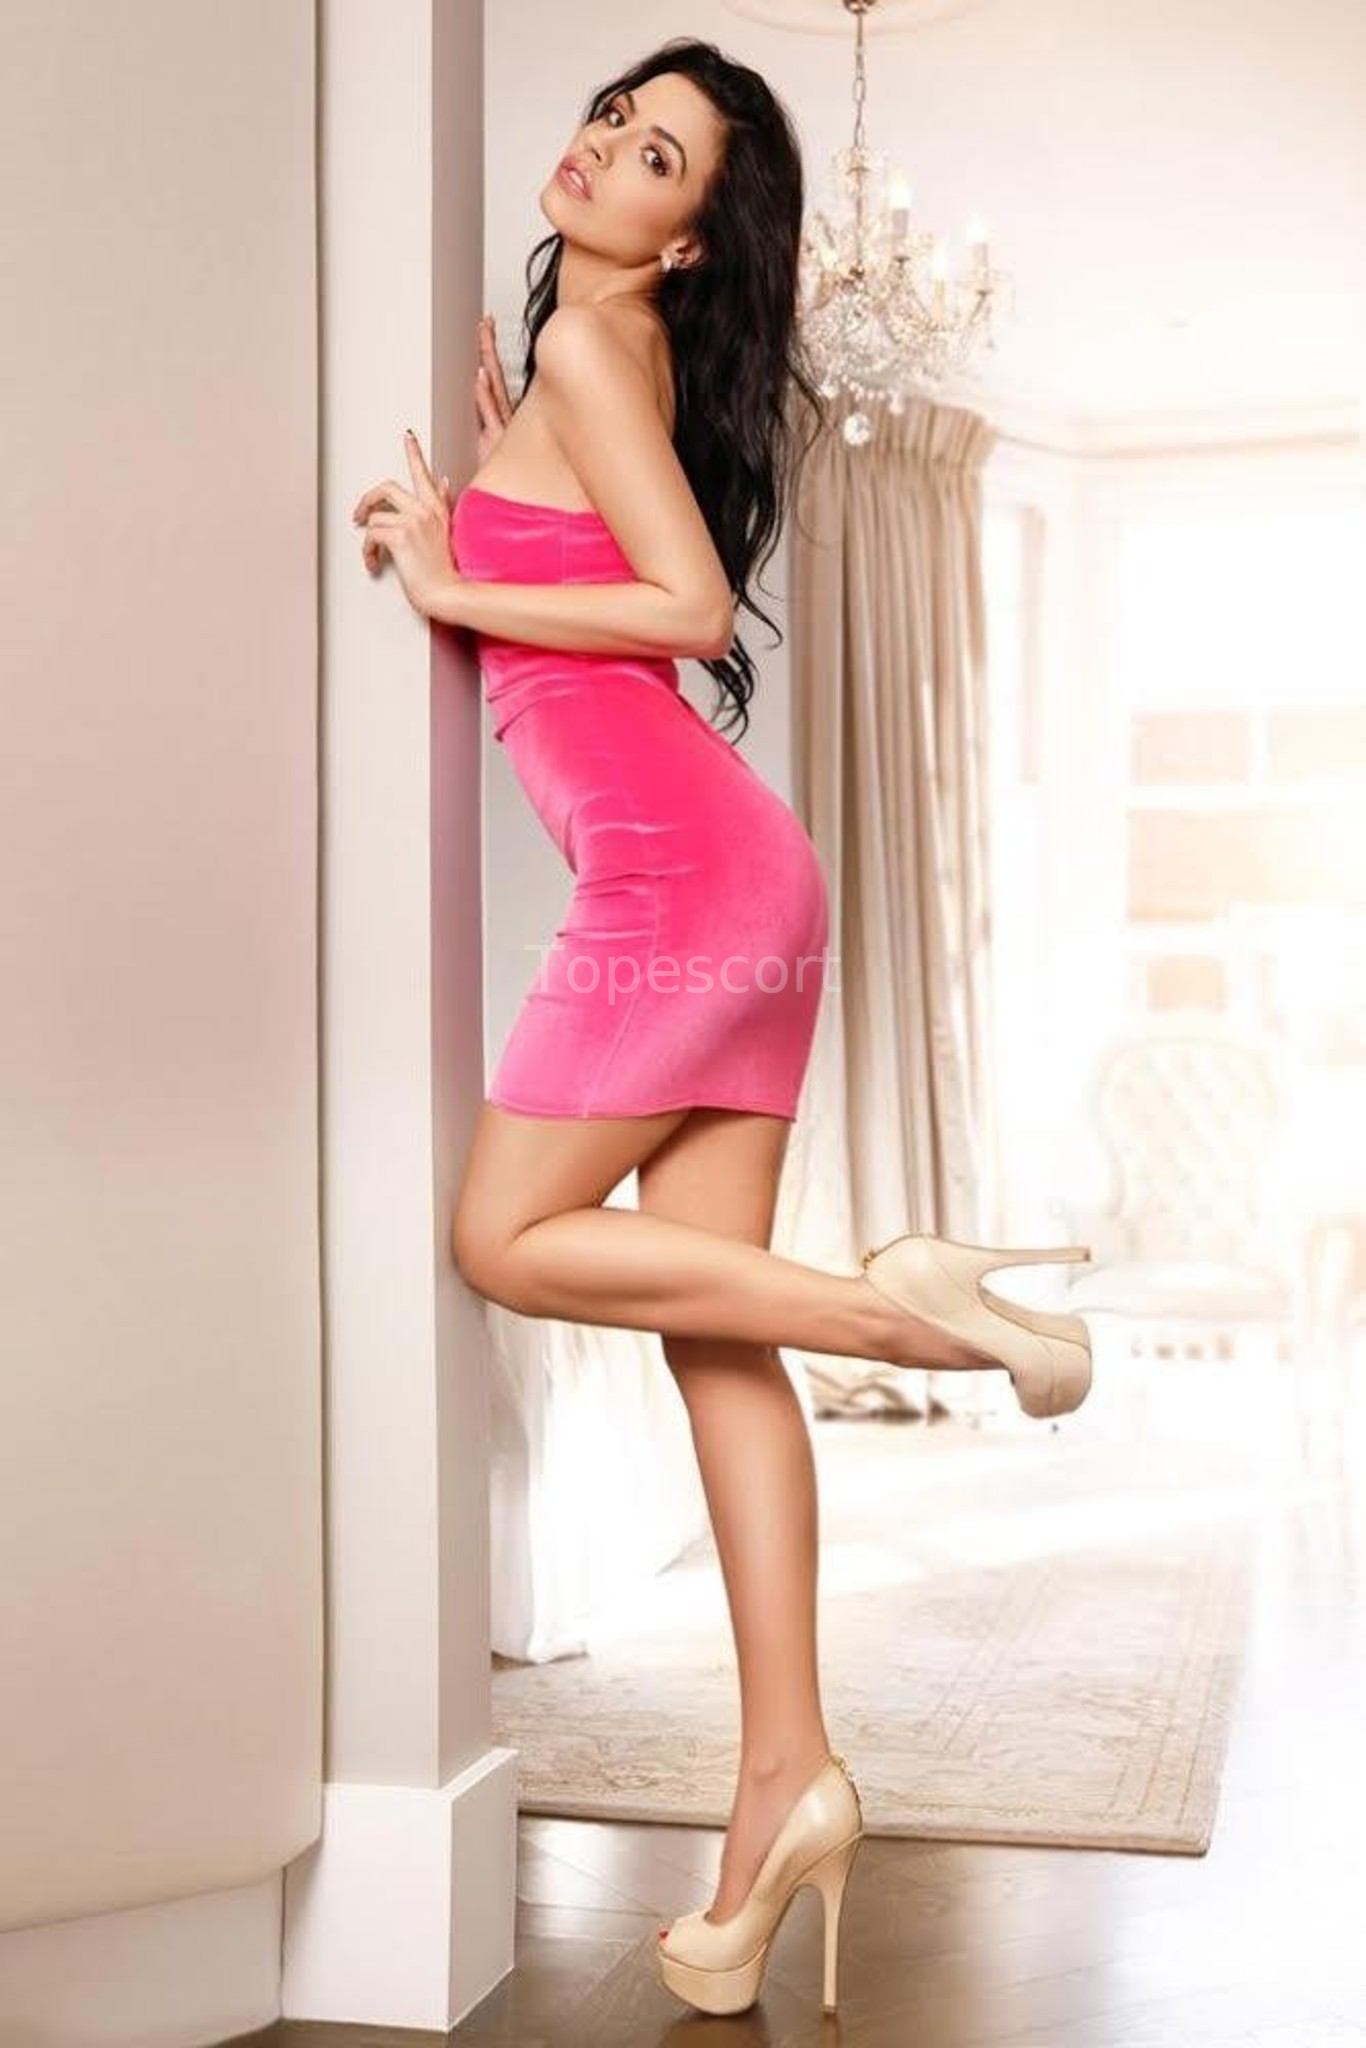 Russian escorts in london high class incall and outcall london escorts